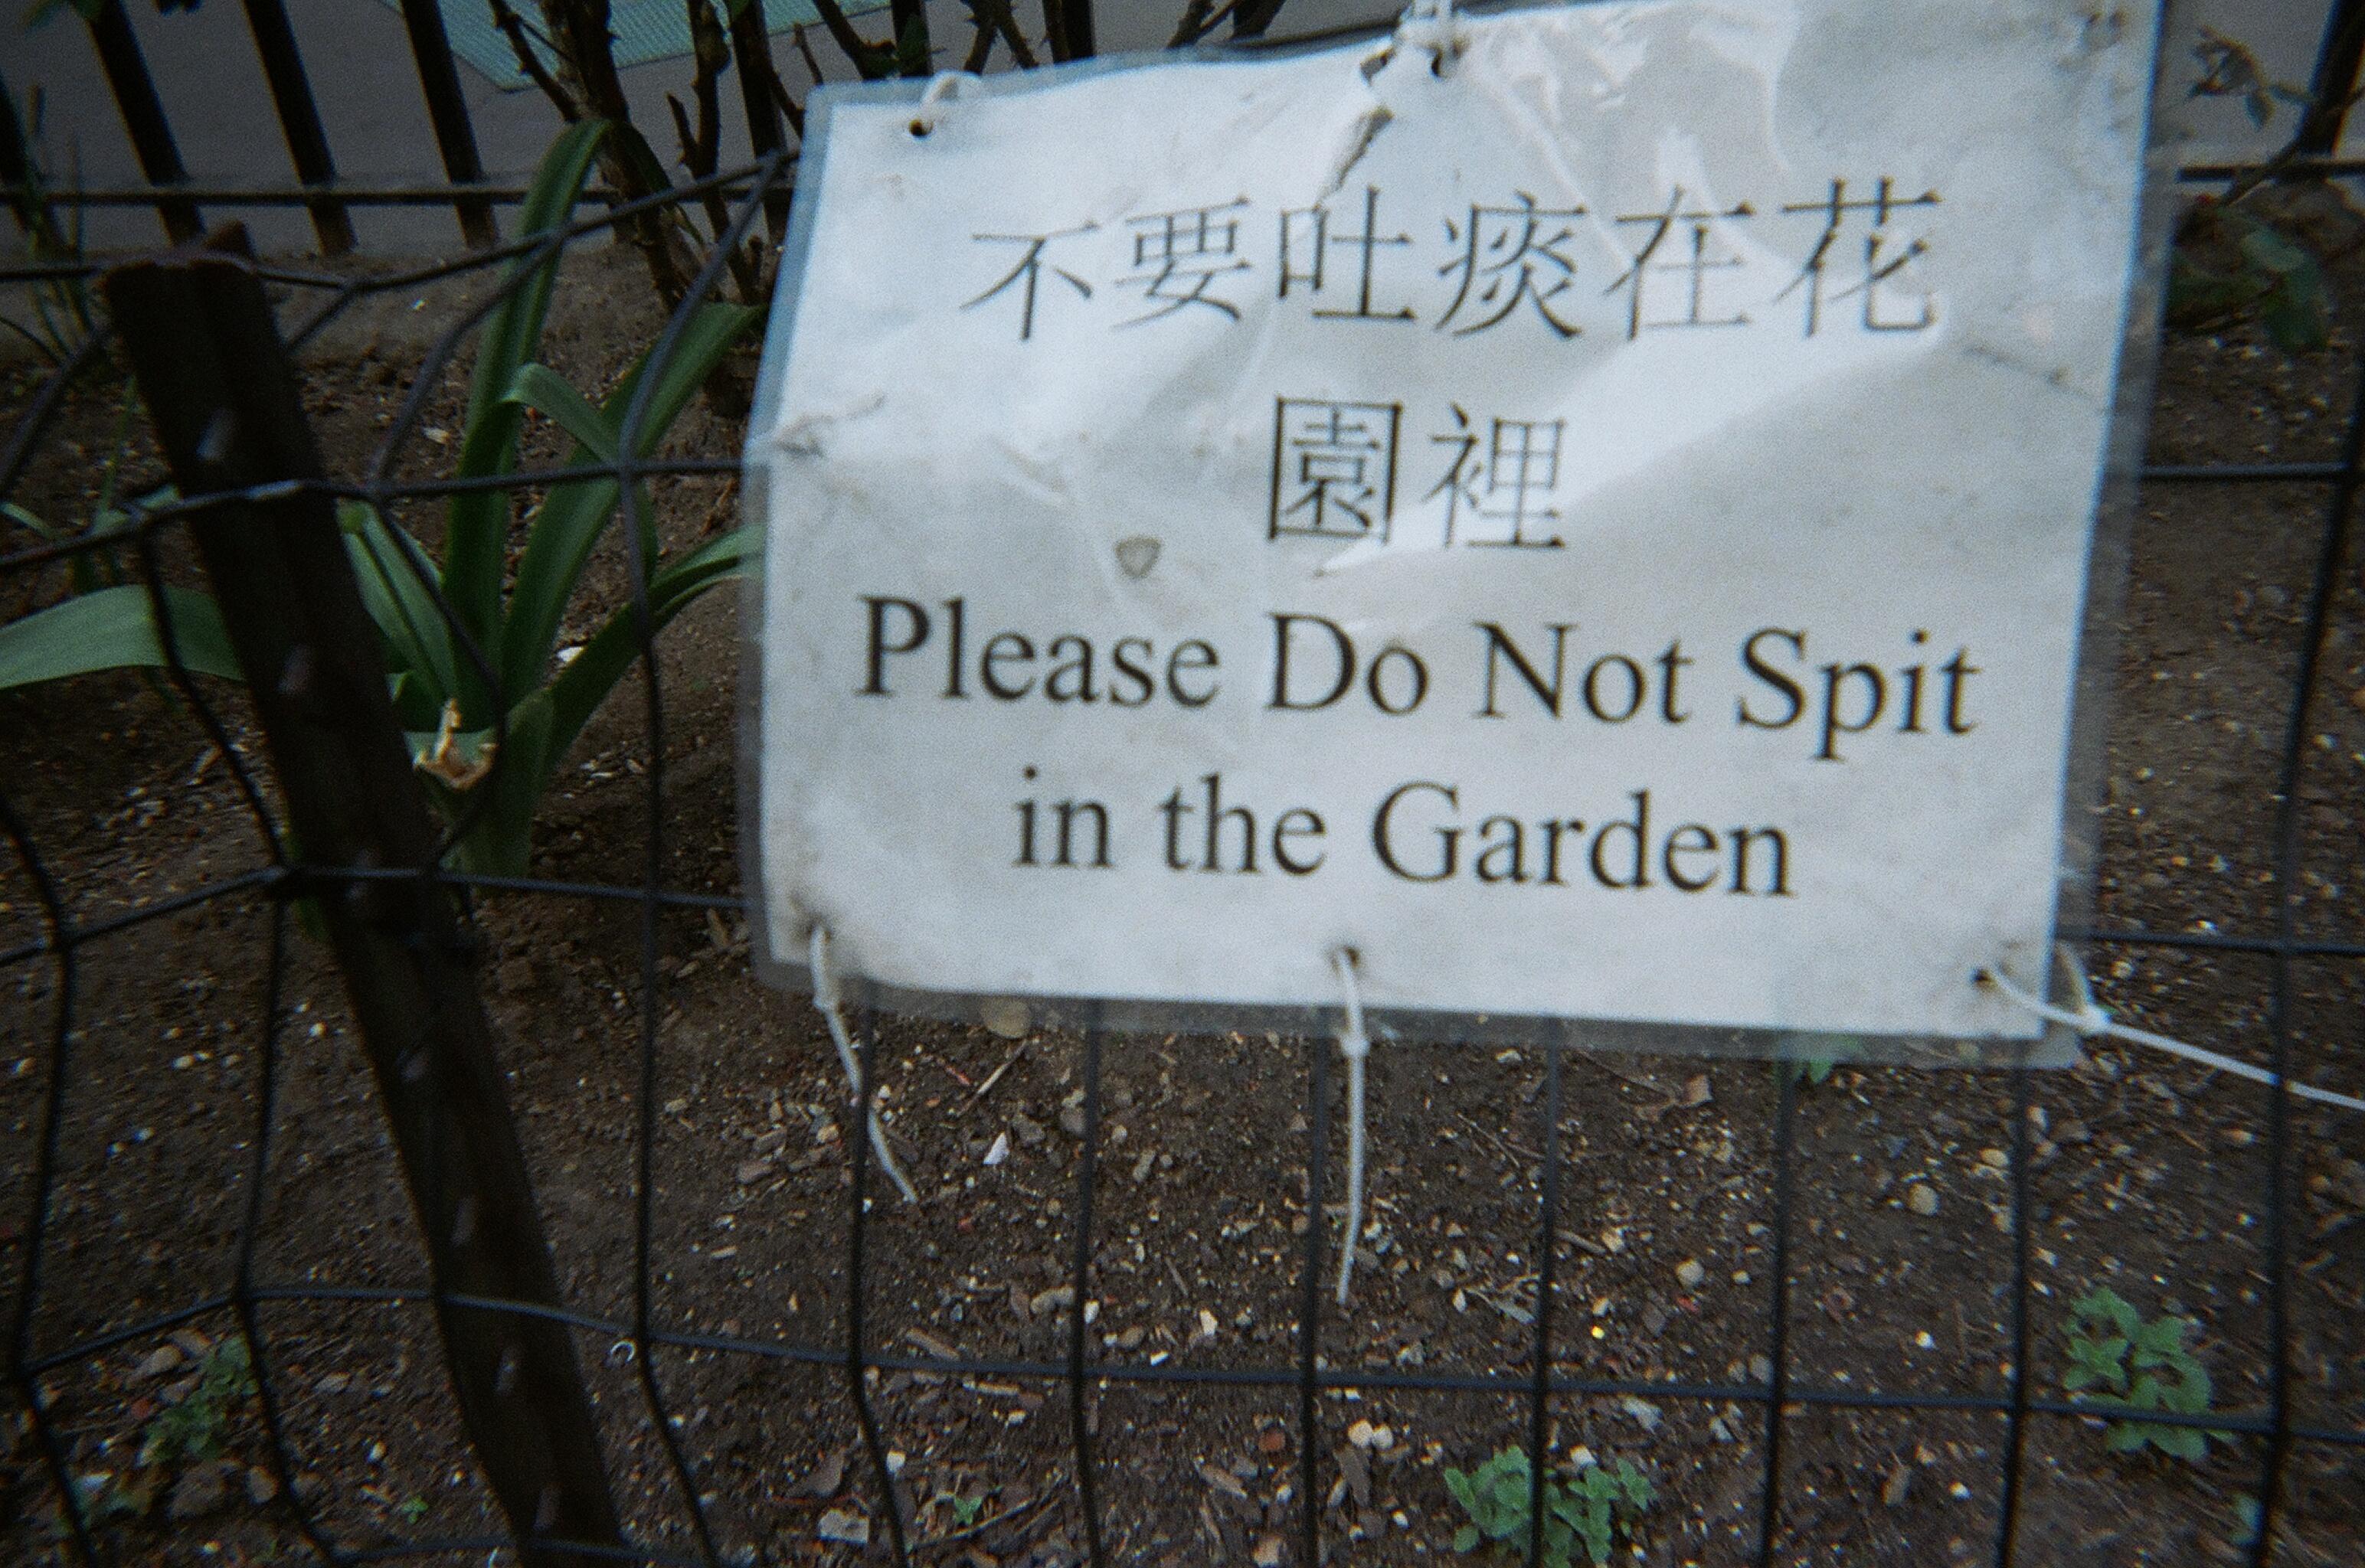 Please Do Not Spit in the Garden